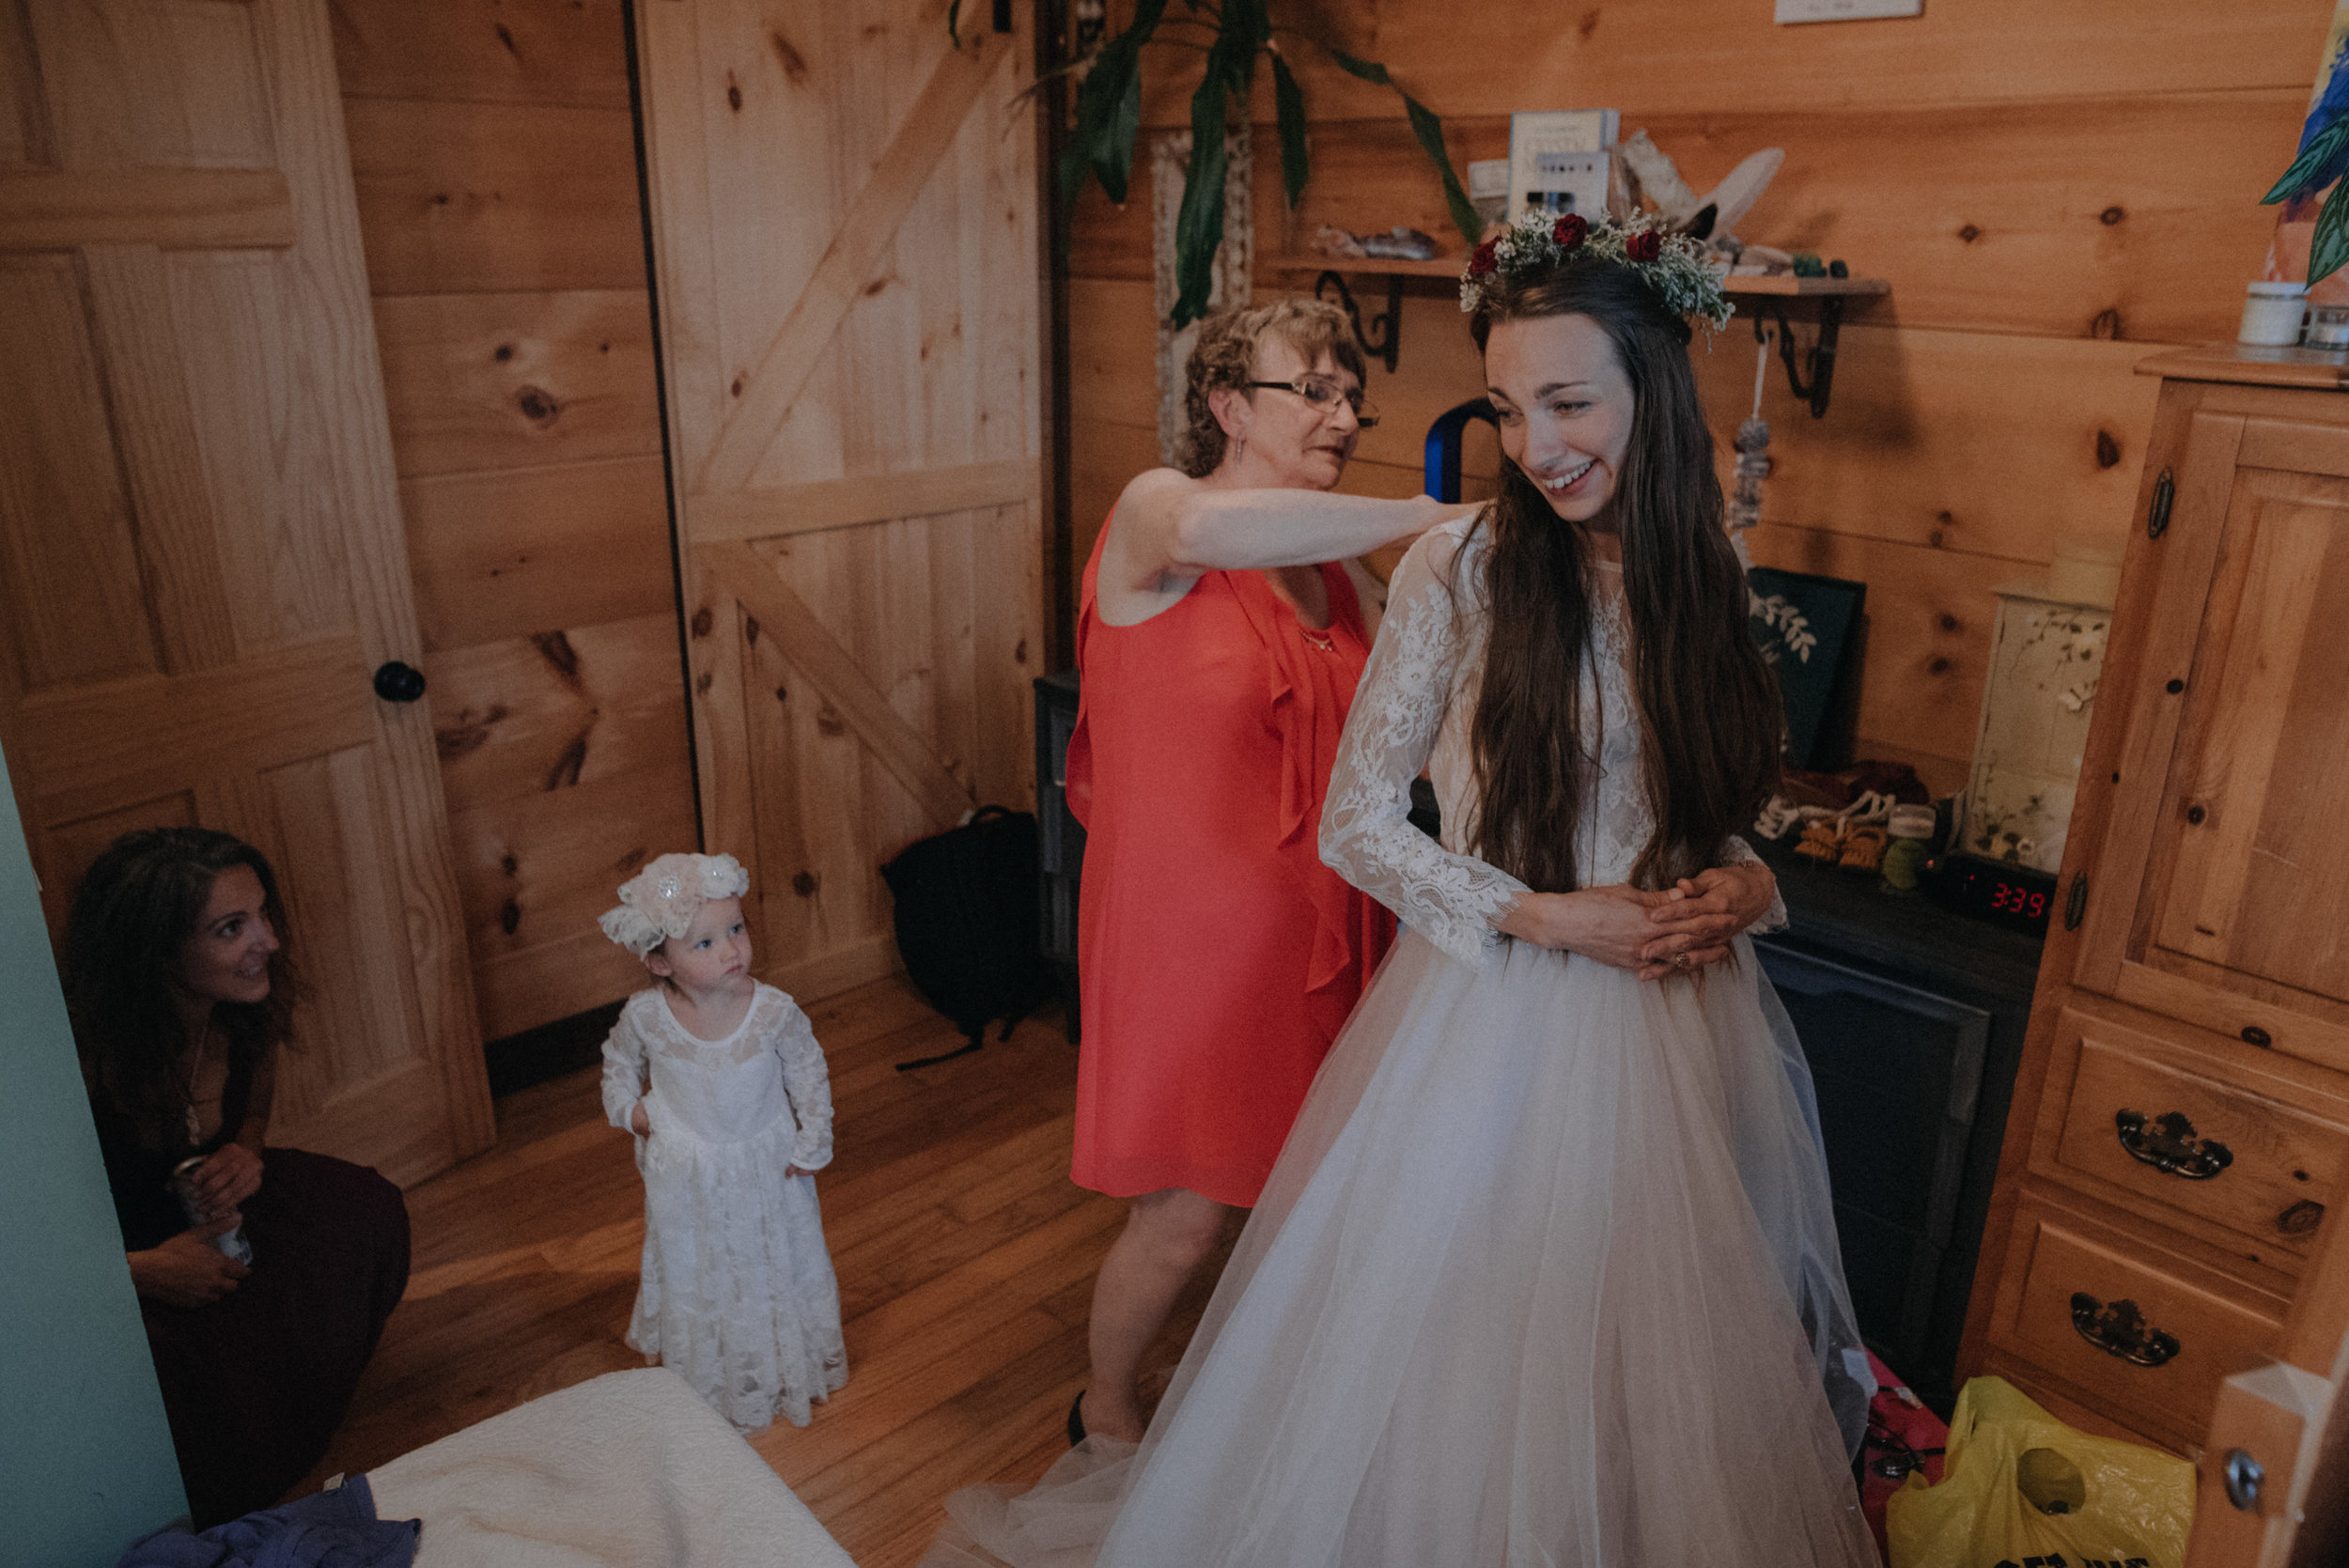 ottawa_wedding_photographer_gatineau_photographe_mariage_documentary_candid_photojournalist_natural_raw_boho_wedding_backyard (12).JPG